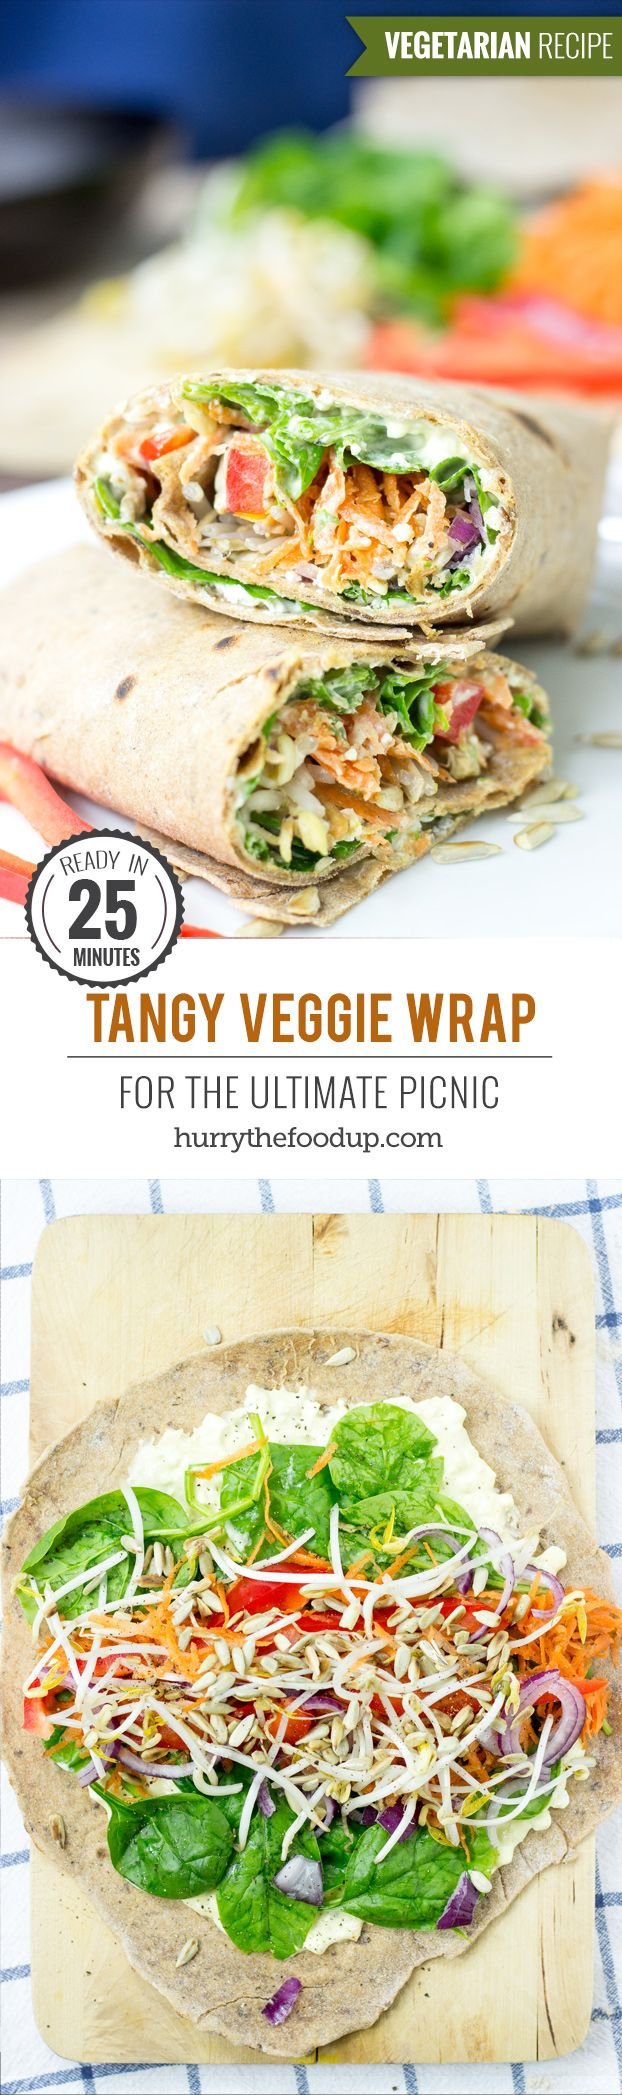 trench coats for men Tangy Veggie Wrap - For The Ultimate Picnic | Recipe | Veggie Wraps, Veggies and Picnics